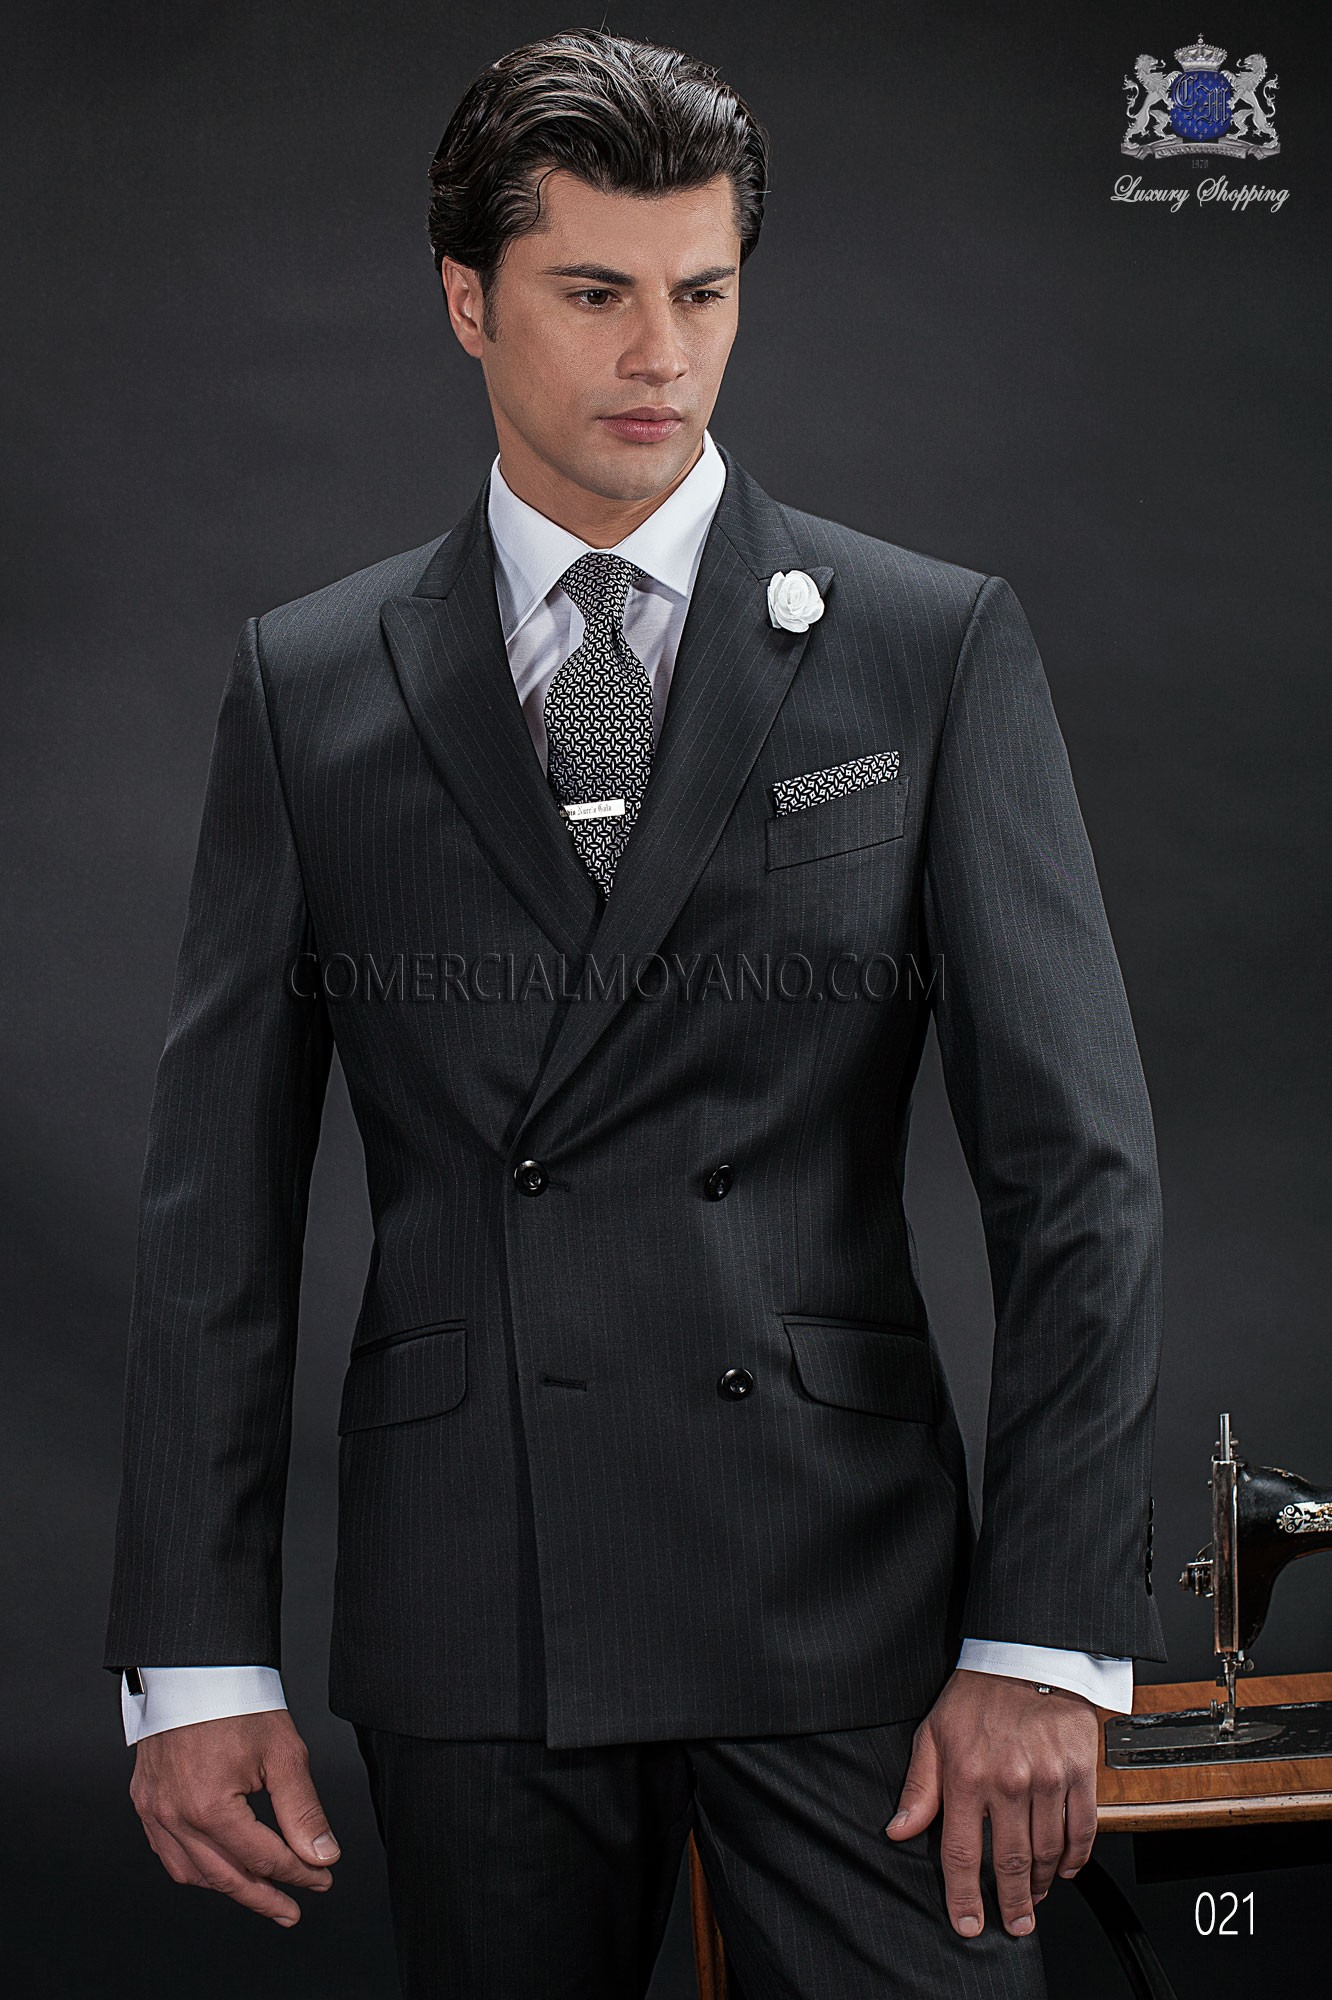 Italian Double Ted Black Groom Suit Loading Zoom